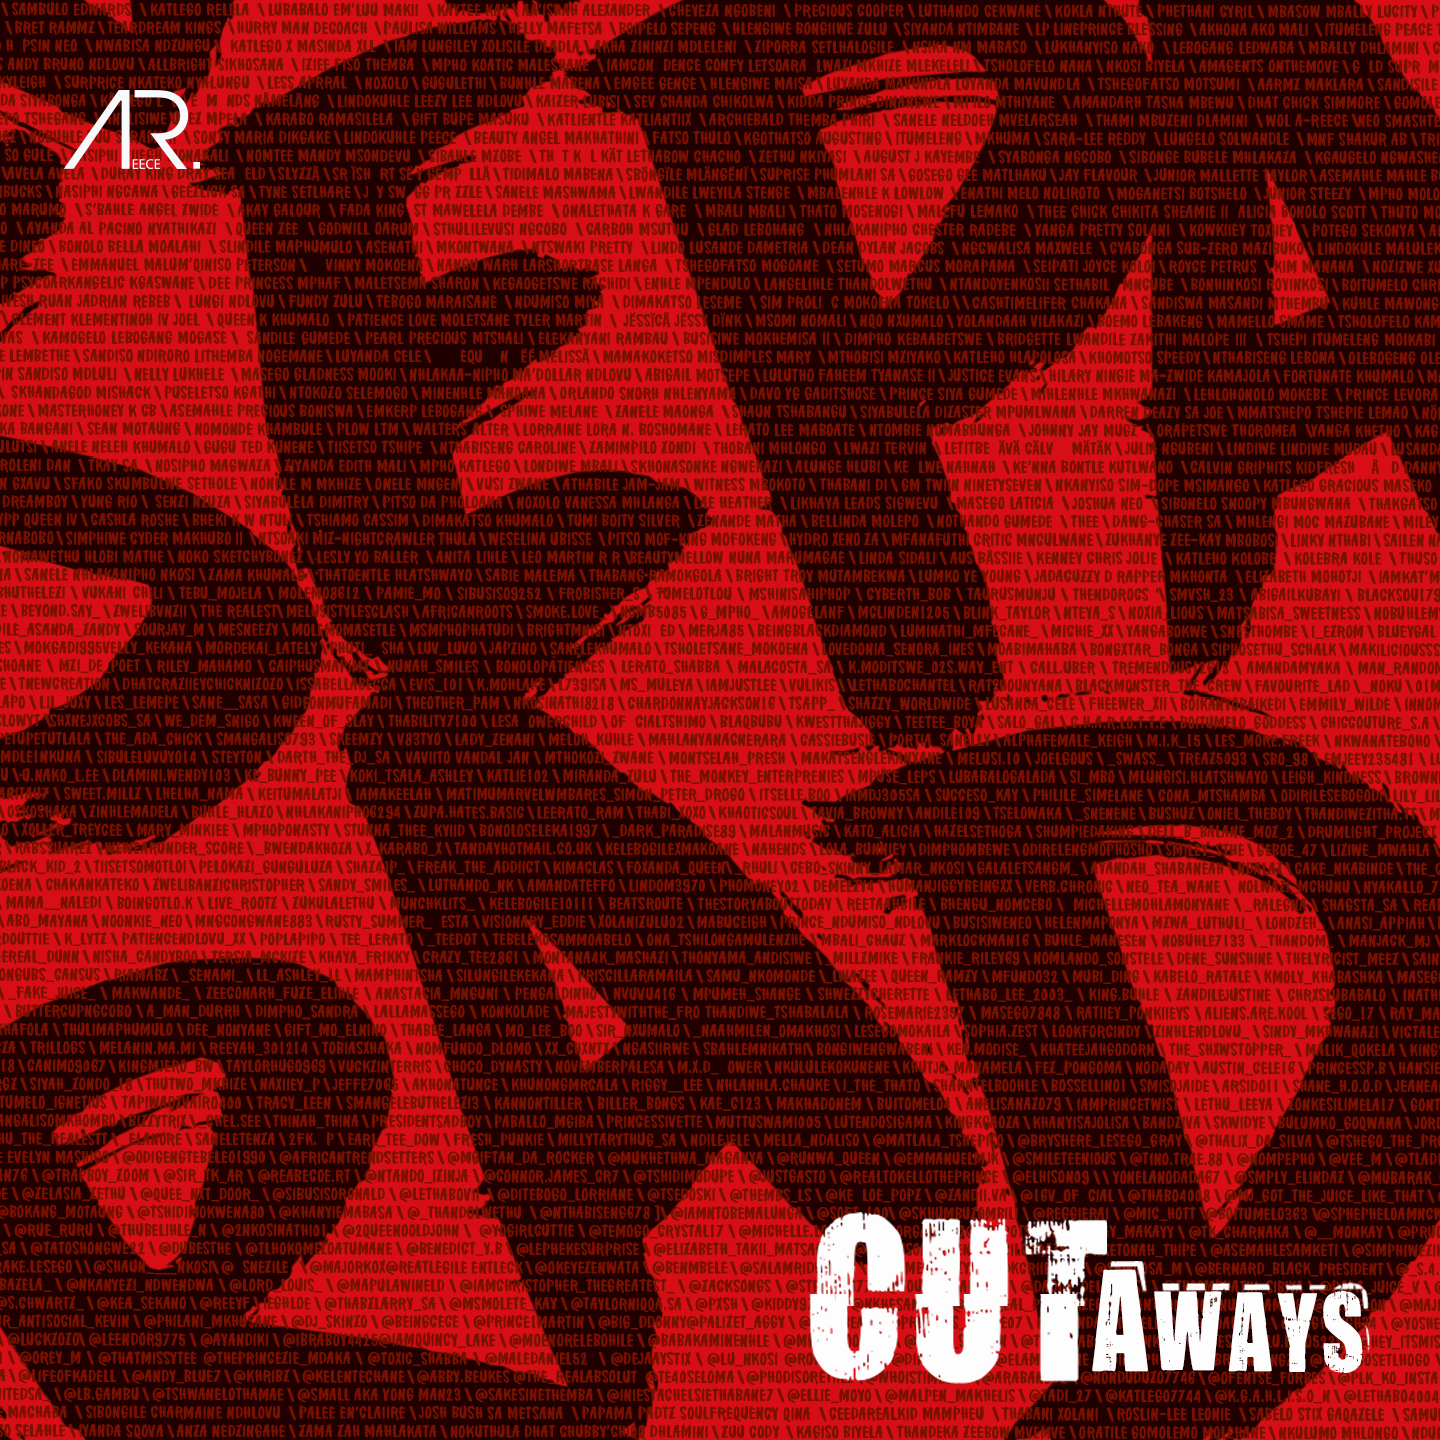 A-Reece Drops New 'CUTaways' EP [Download] 65f3ca1971f837582a8d11a2e7633b96